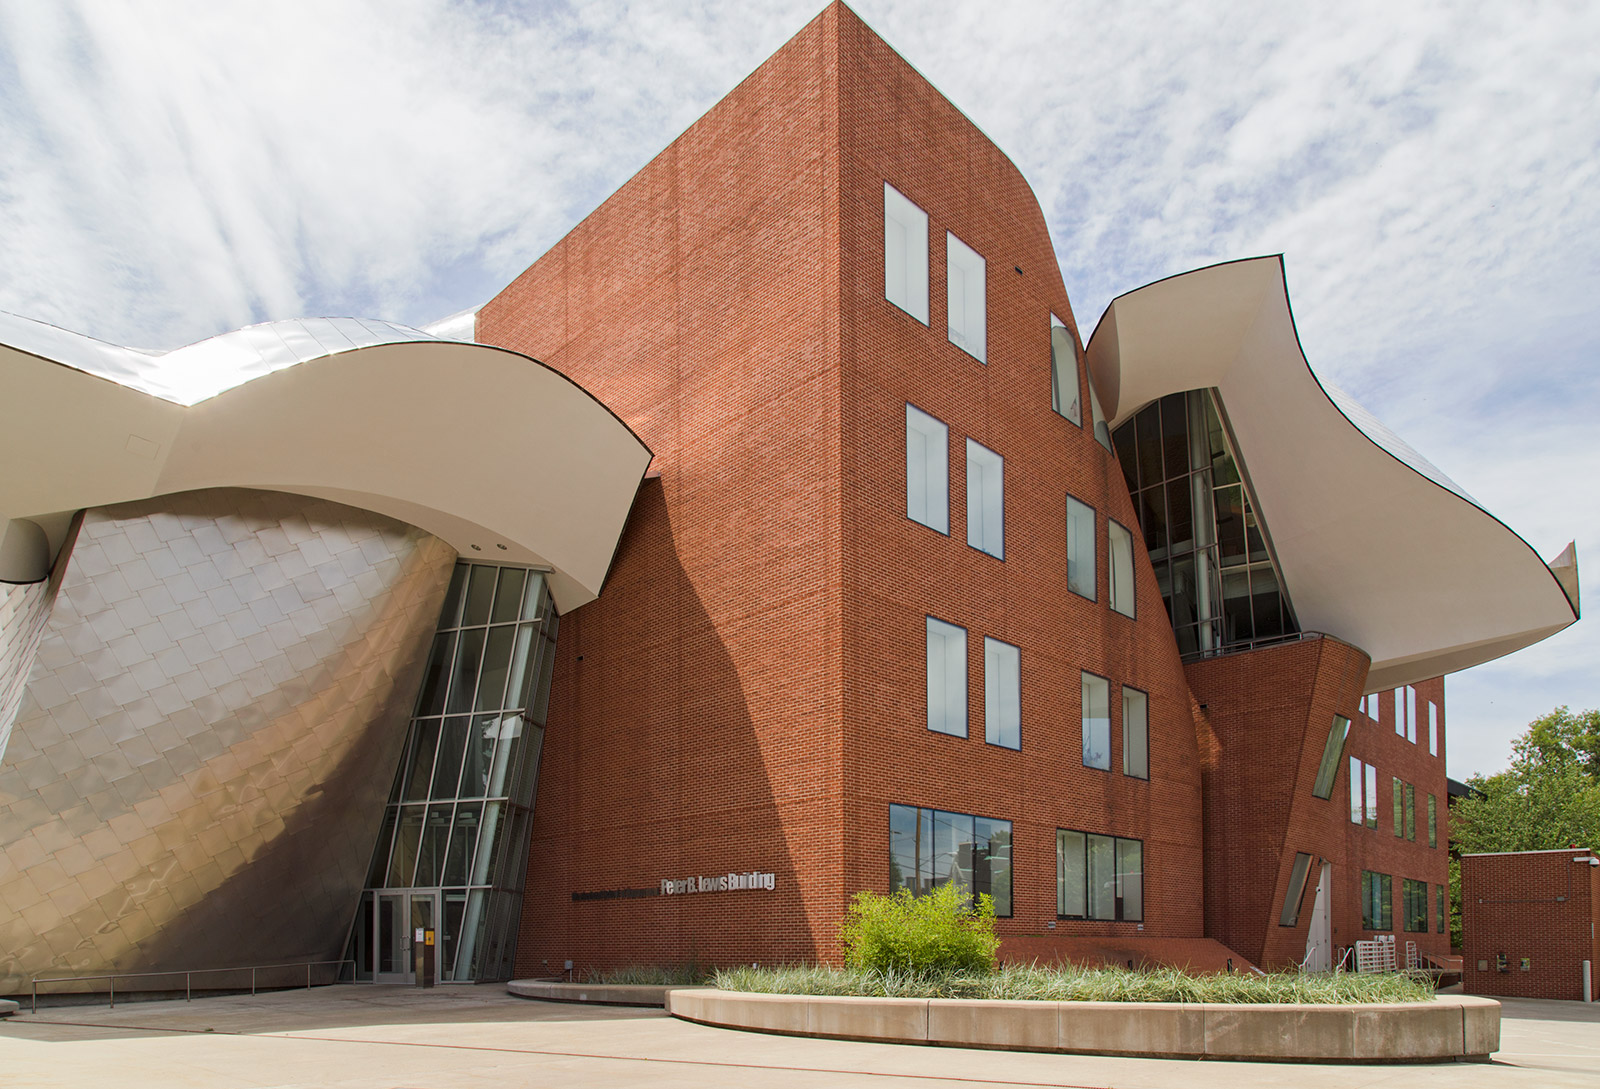 20140812. The deconstructivist architecture of the Frank Gehry-d